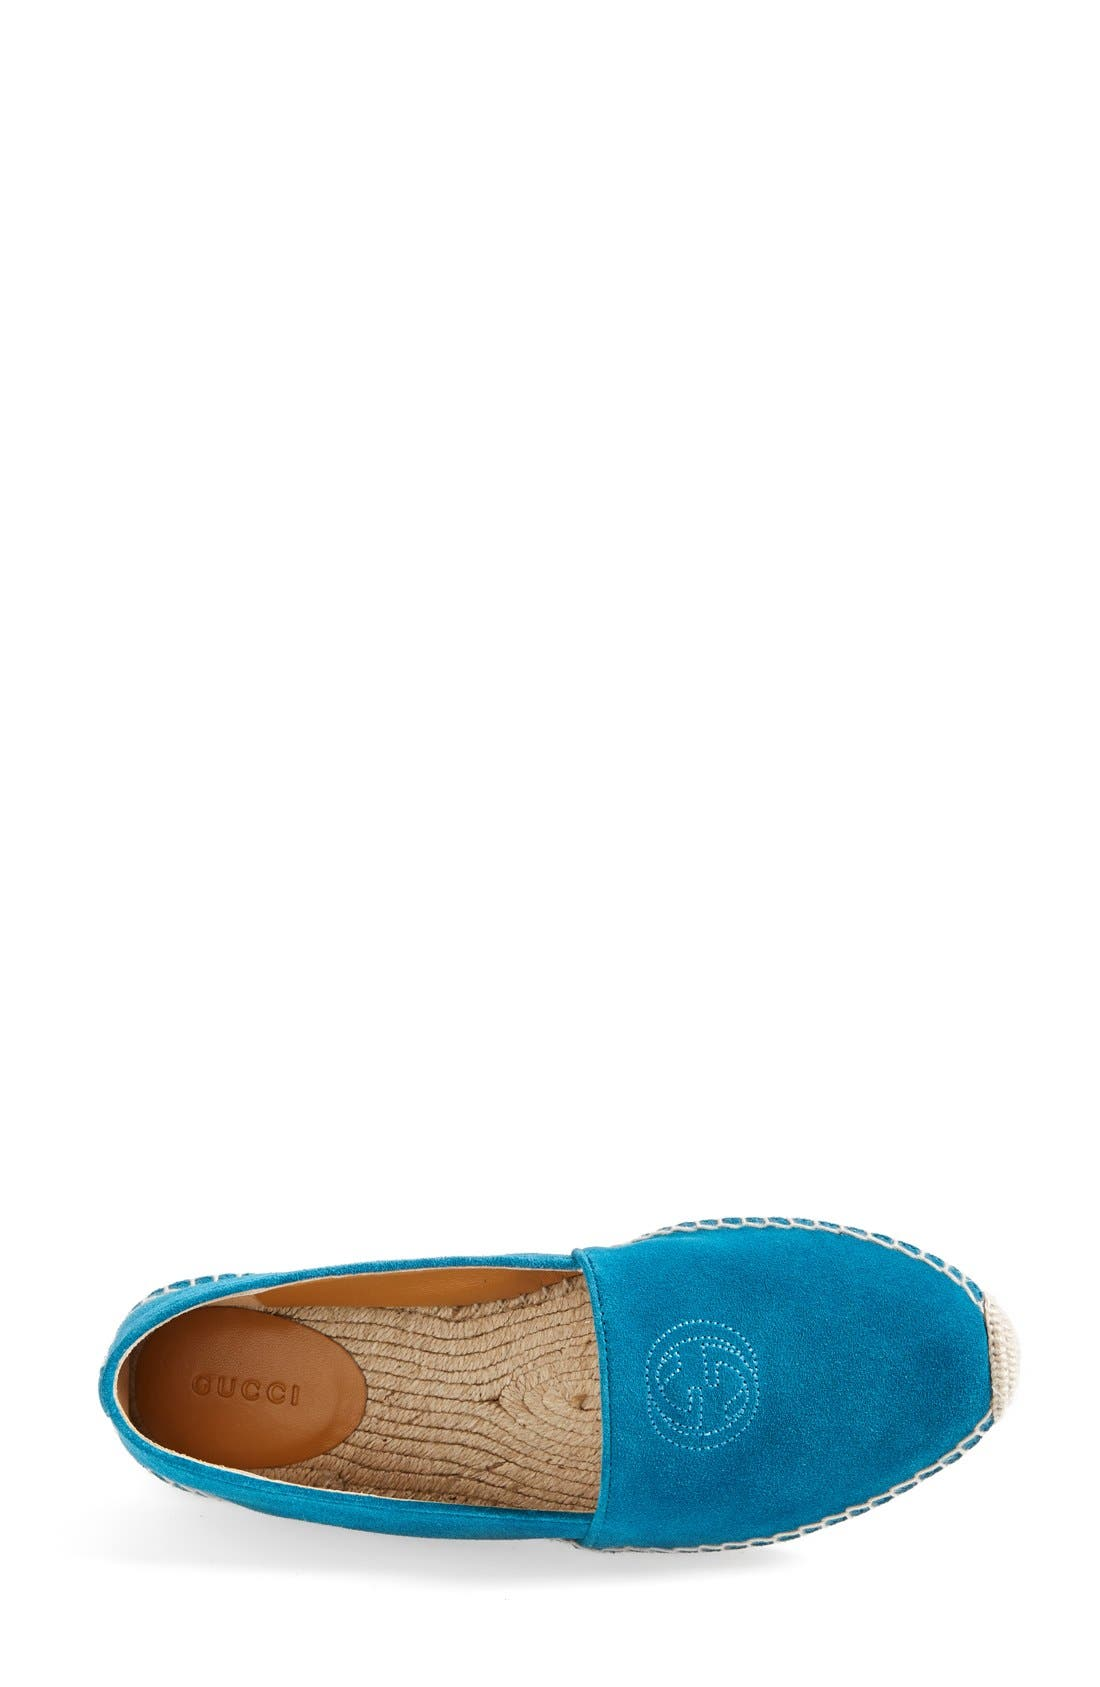 Alternate Image 3  - Gucci 'Pilar' Espadrille Flat (Women)